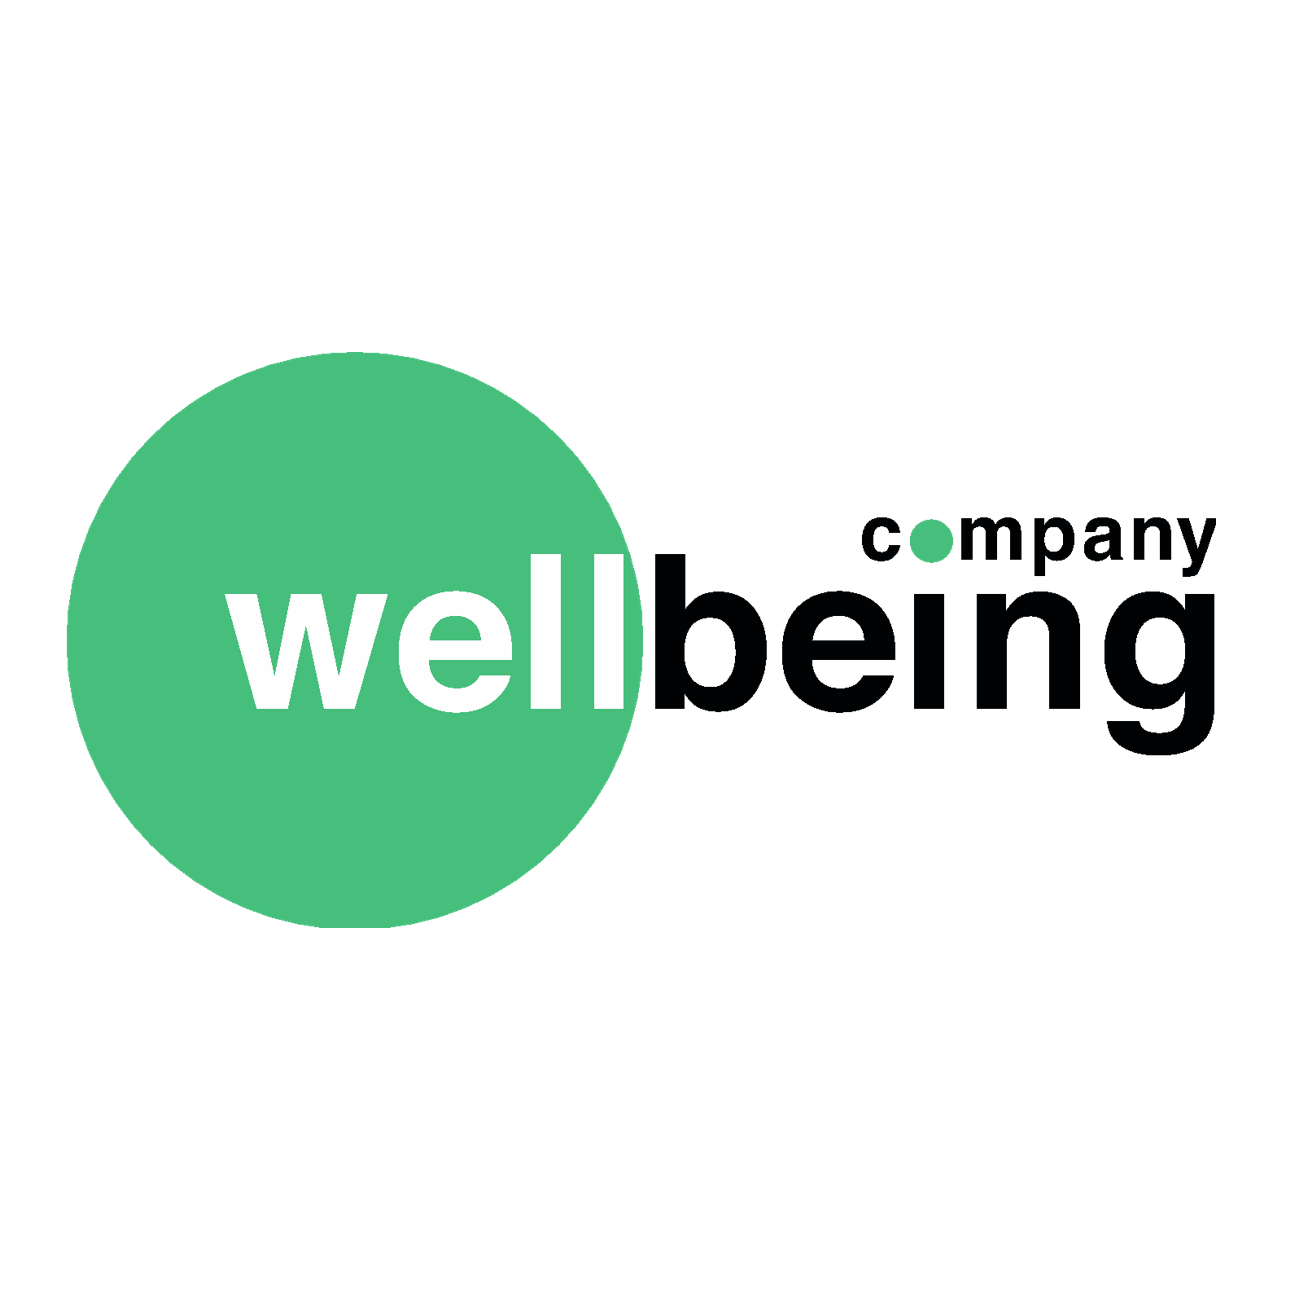 Wellbeing Company